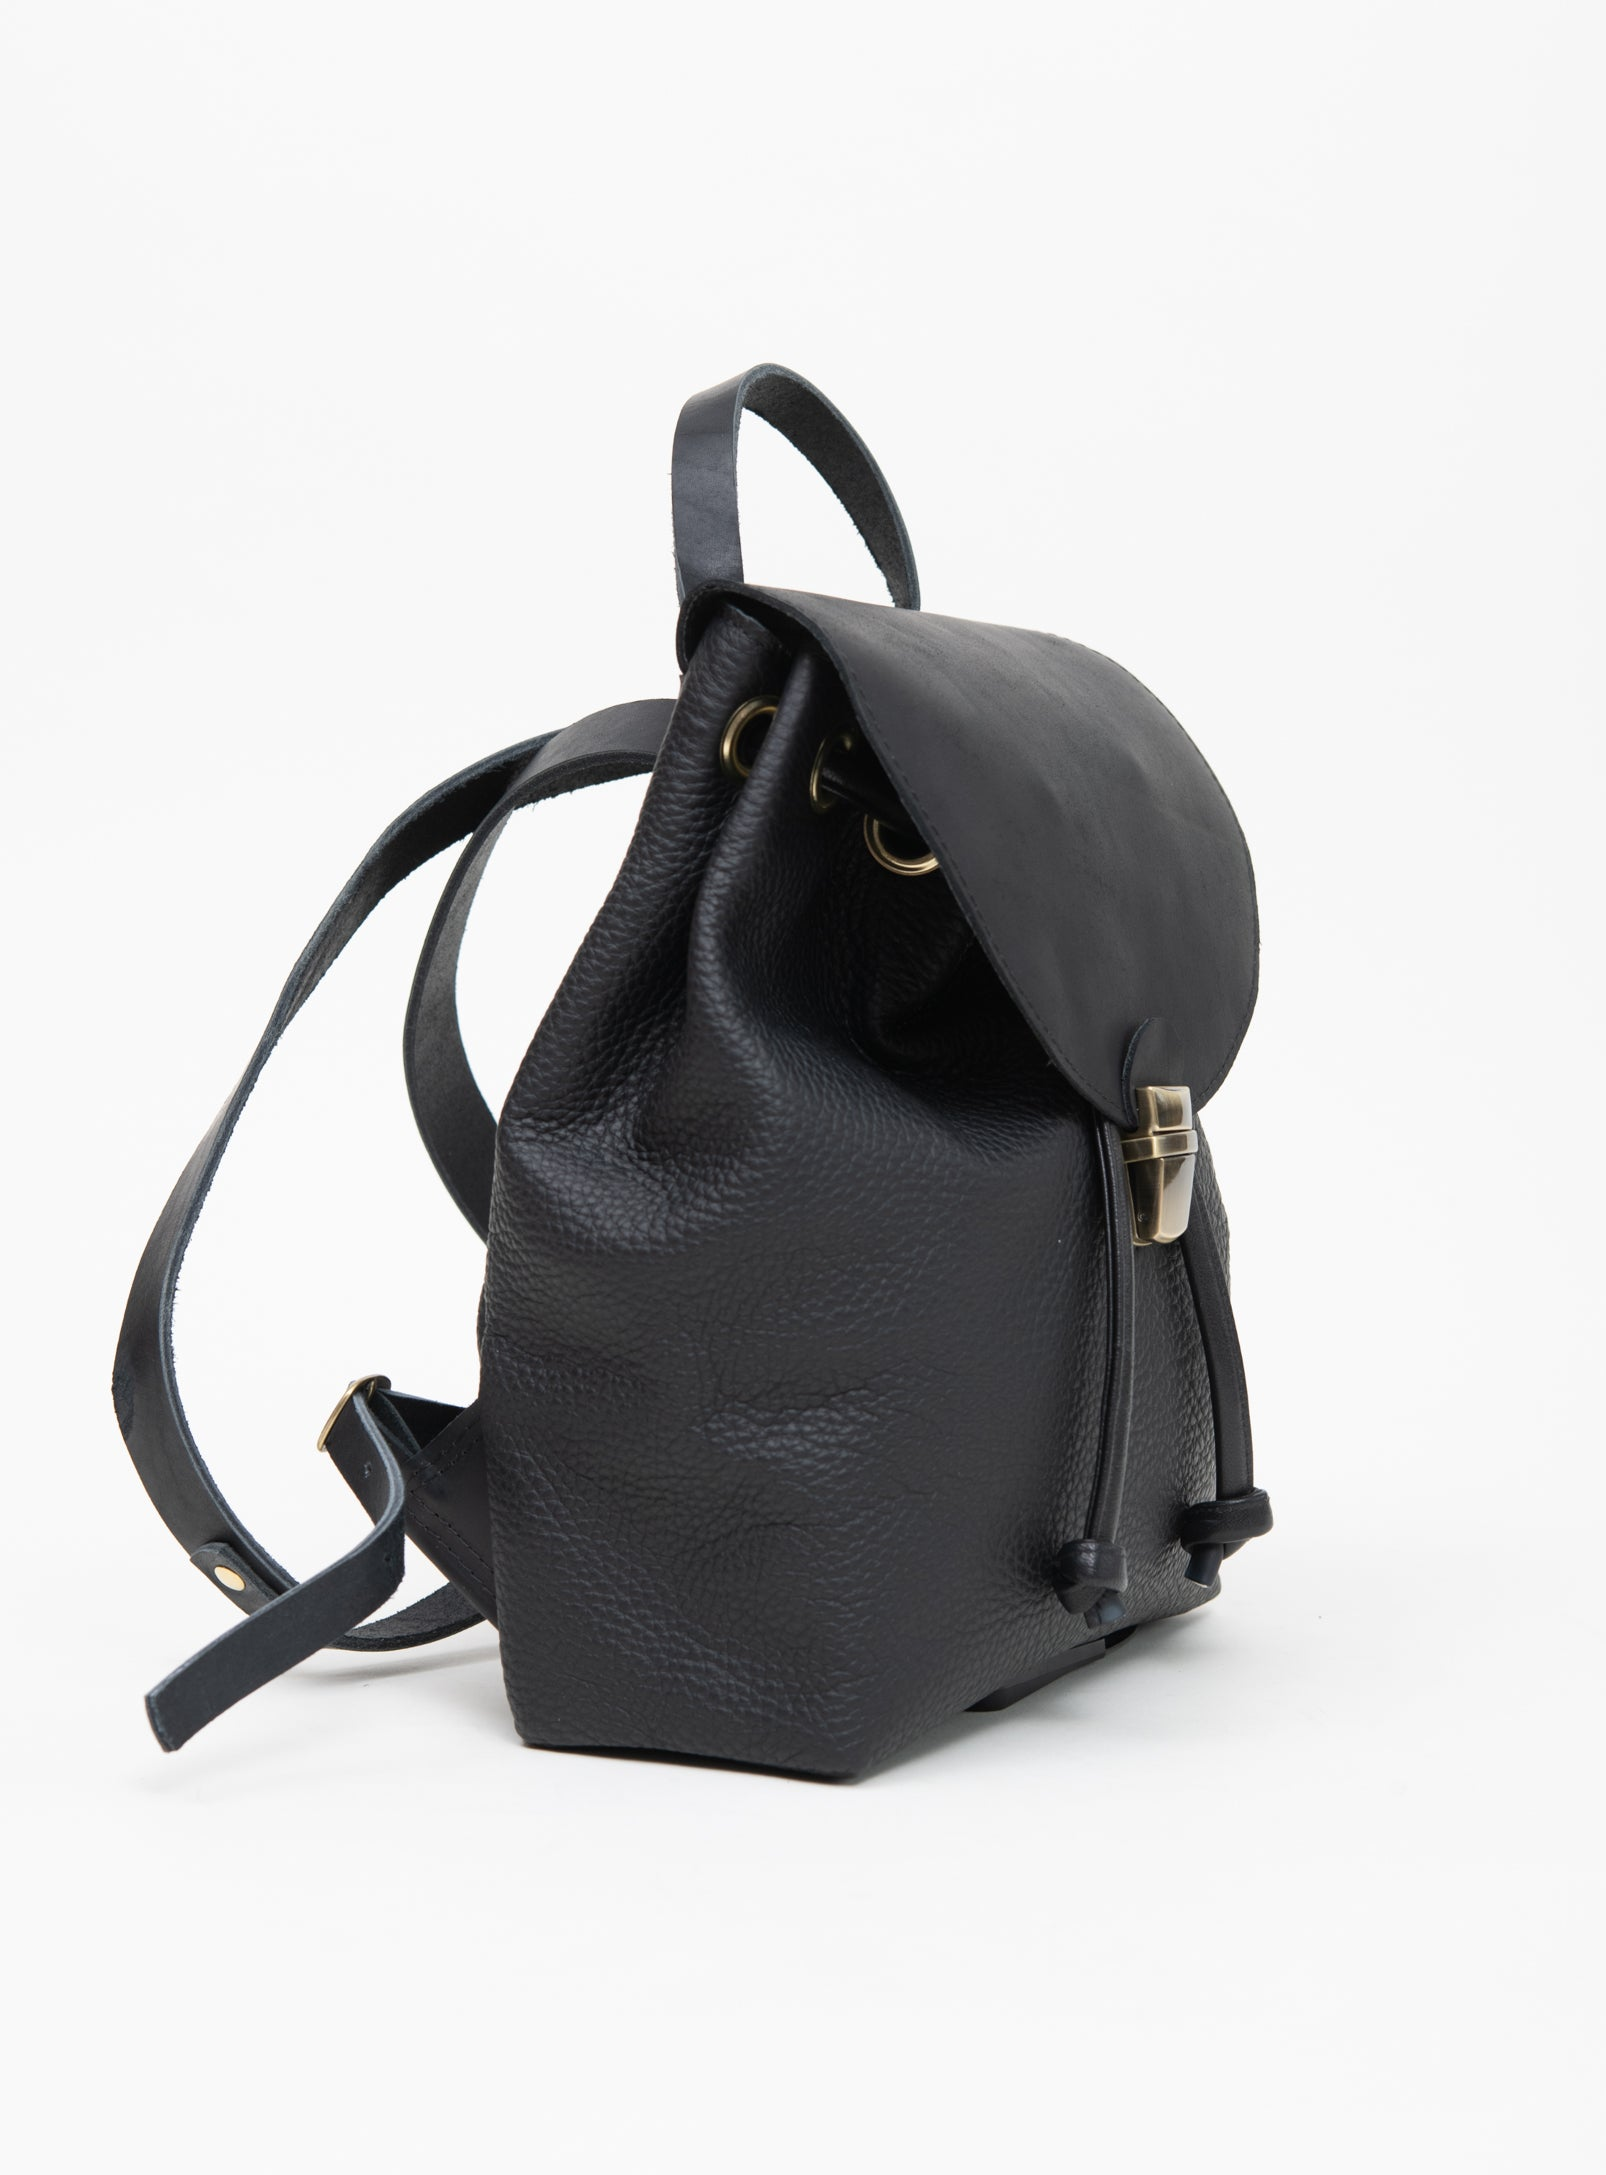 Leather rucksack MILAN model Small